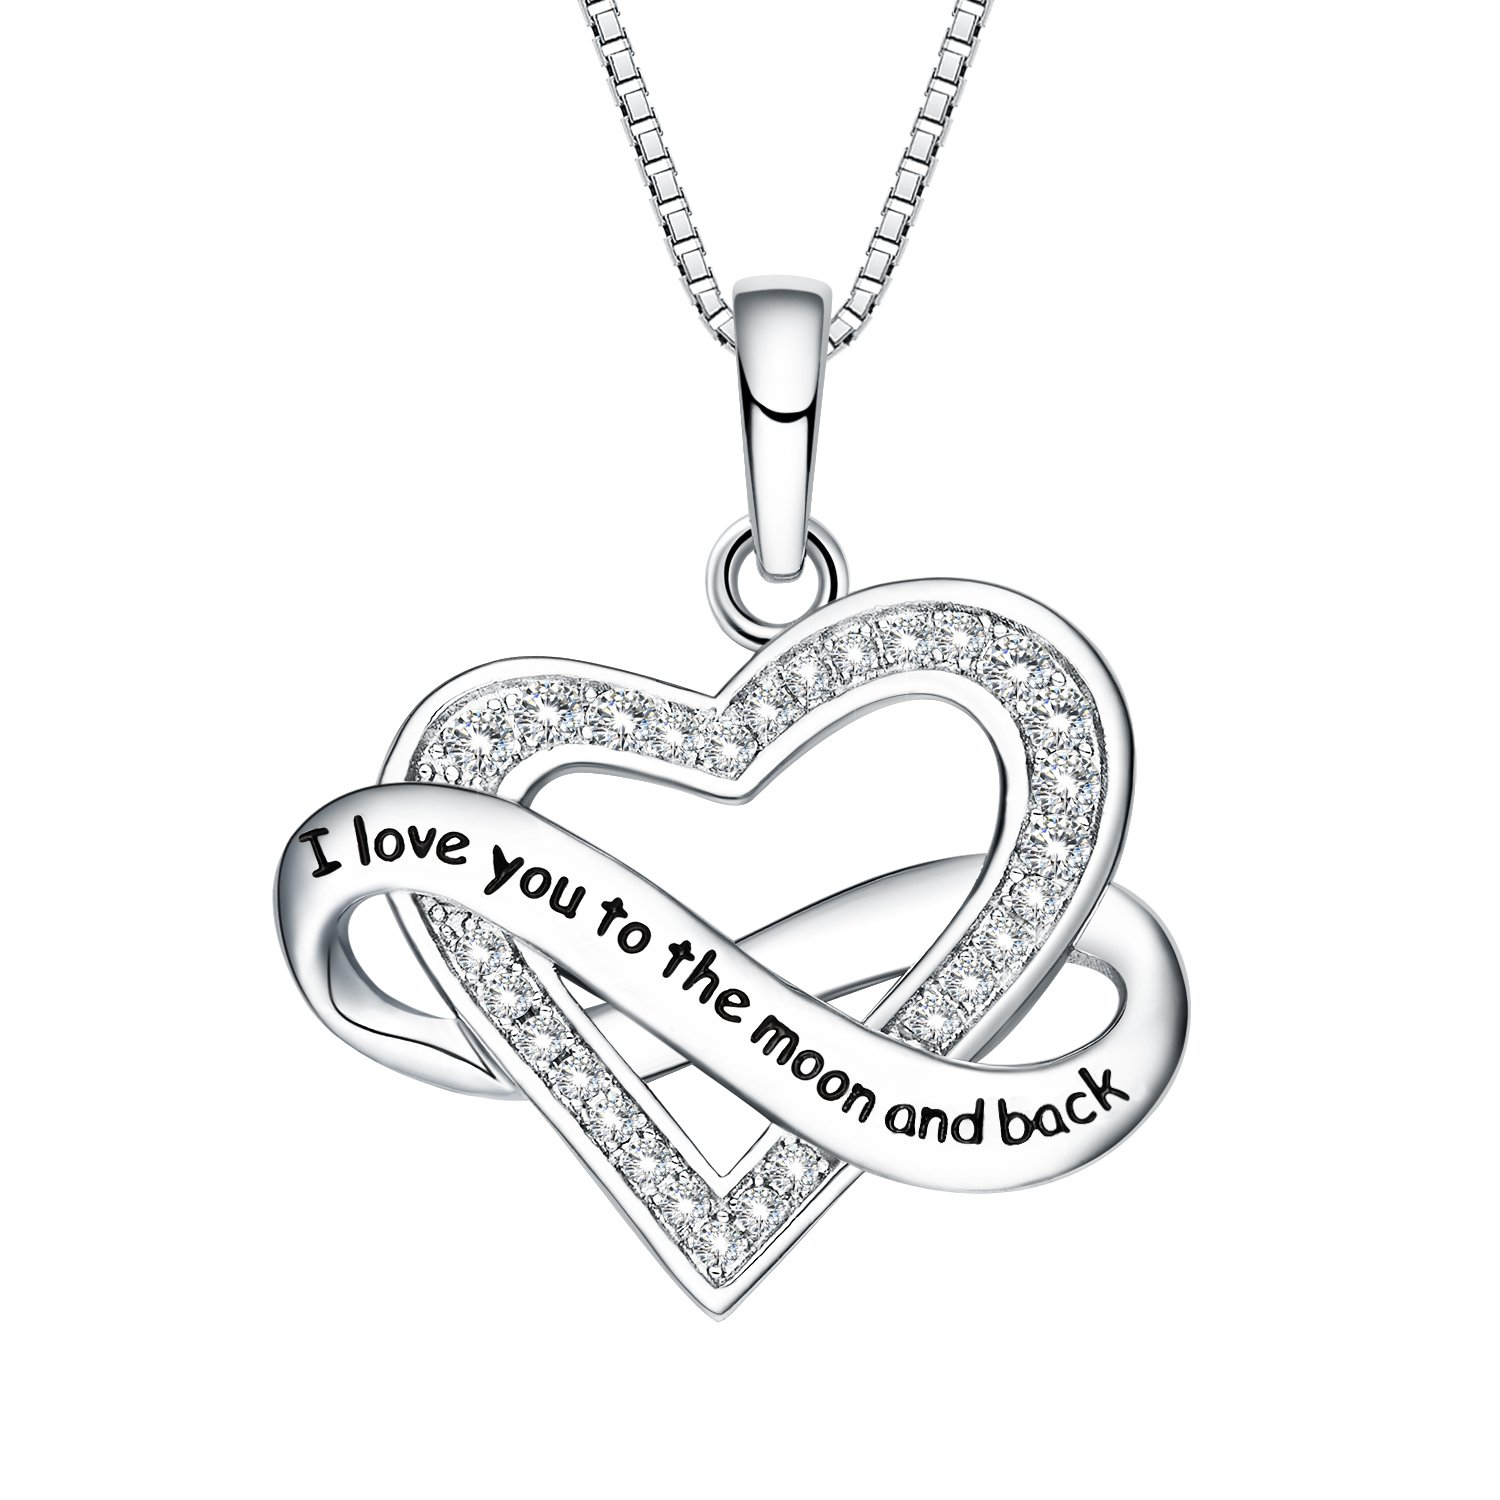 NUMMY I Love You To The Moon And Back Engraved Pendant Necklace for Women (18'' Adjustable) - Silver Crystal Pendant w/Luxury Gift Box Lights Her Face Up w/a Smile (I Love You To The Moon & Back)